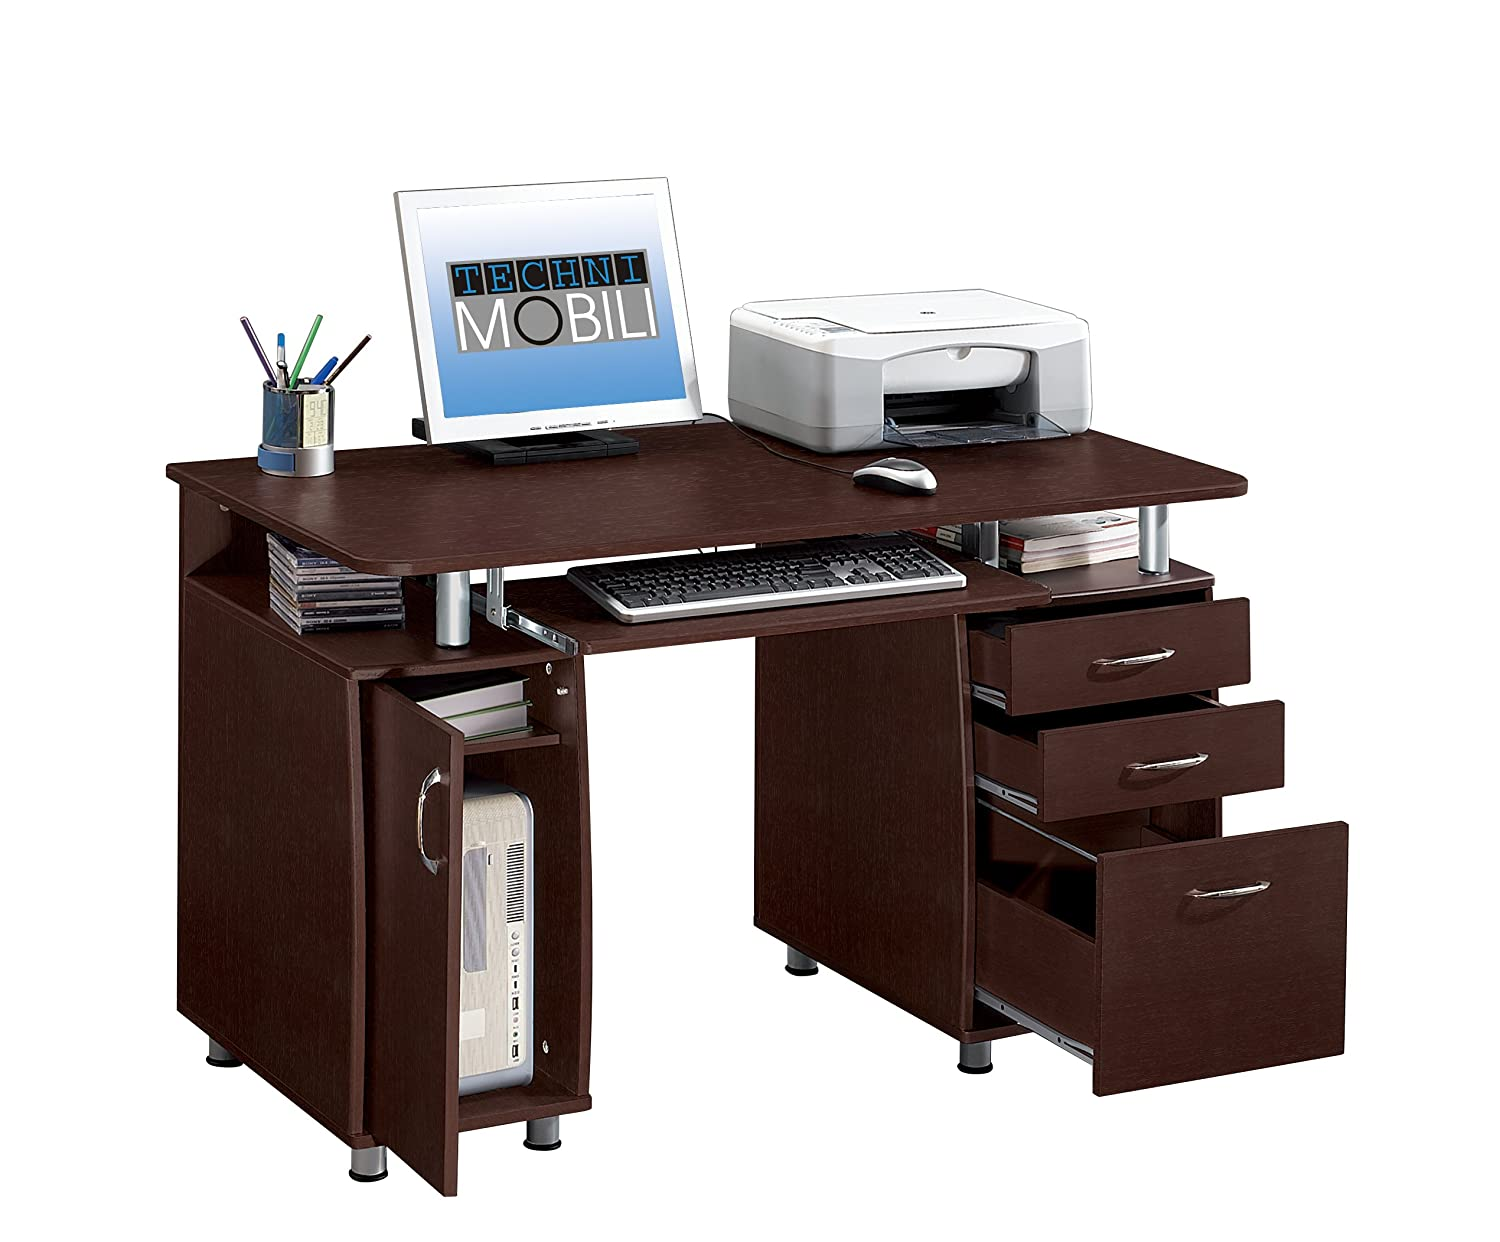 for com intended stylish products home of mobili desk with classy modern design computer super stunning onsingularity decorating techni storage